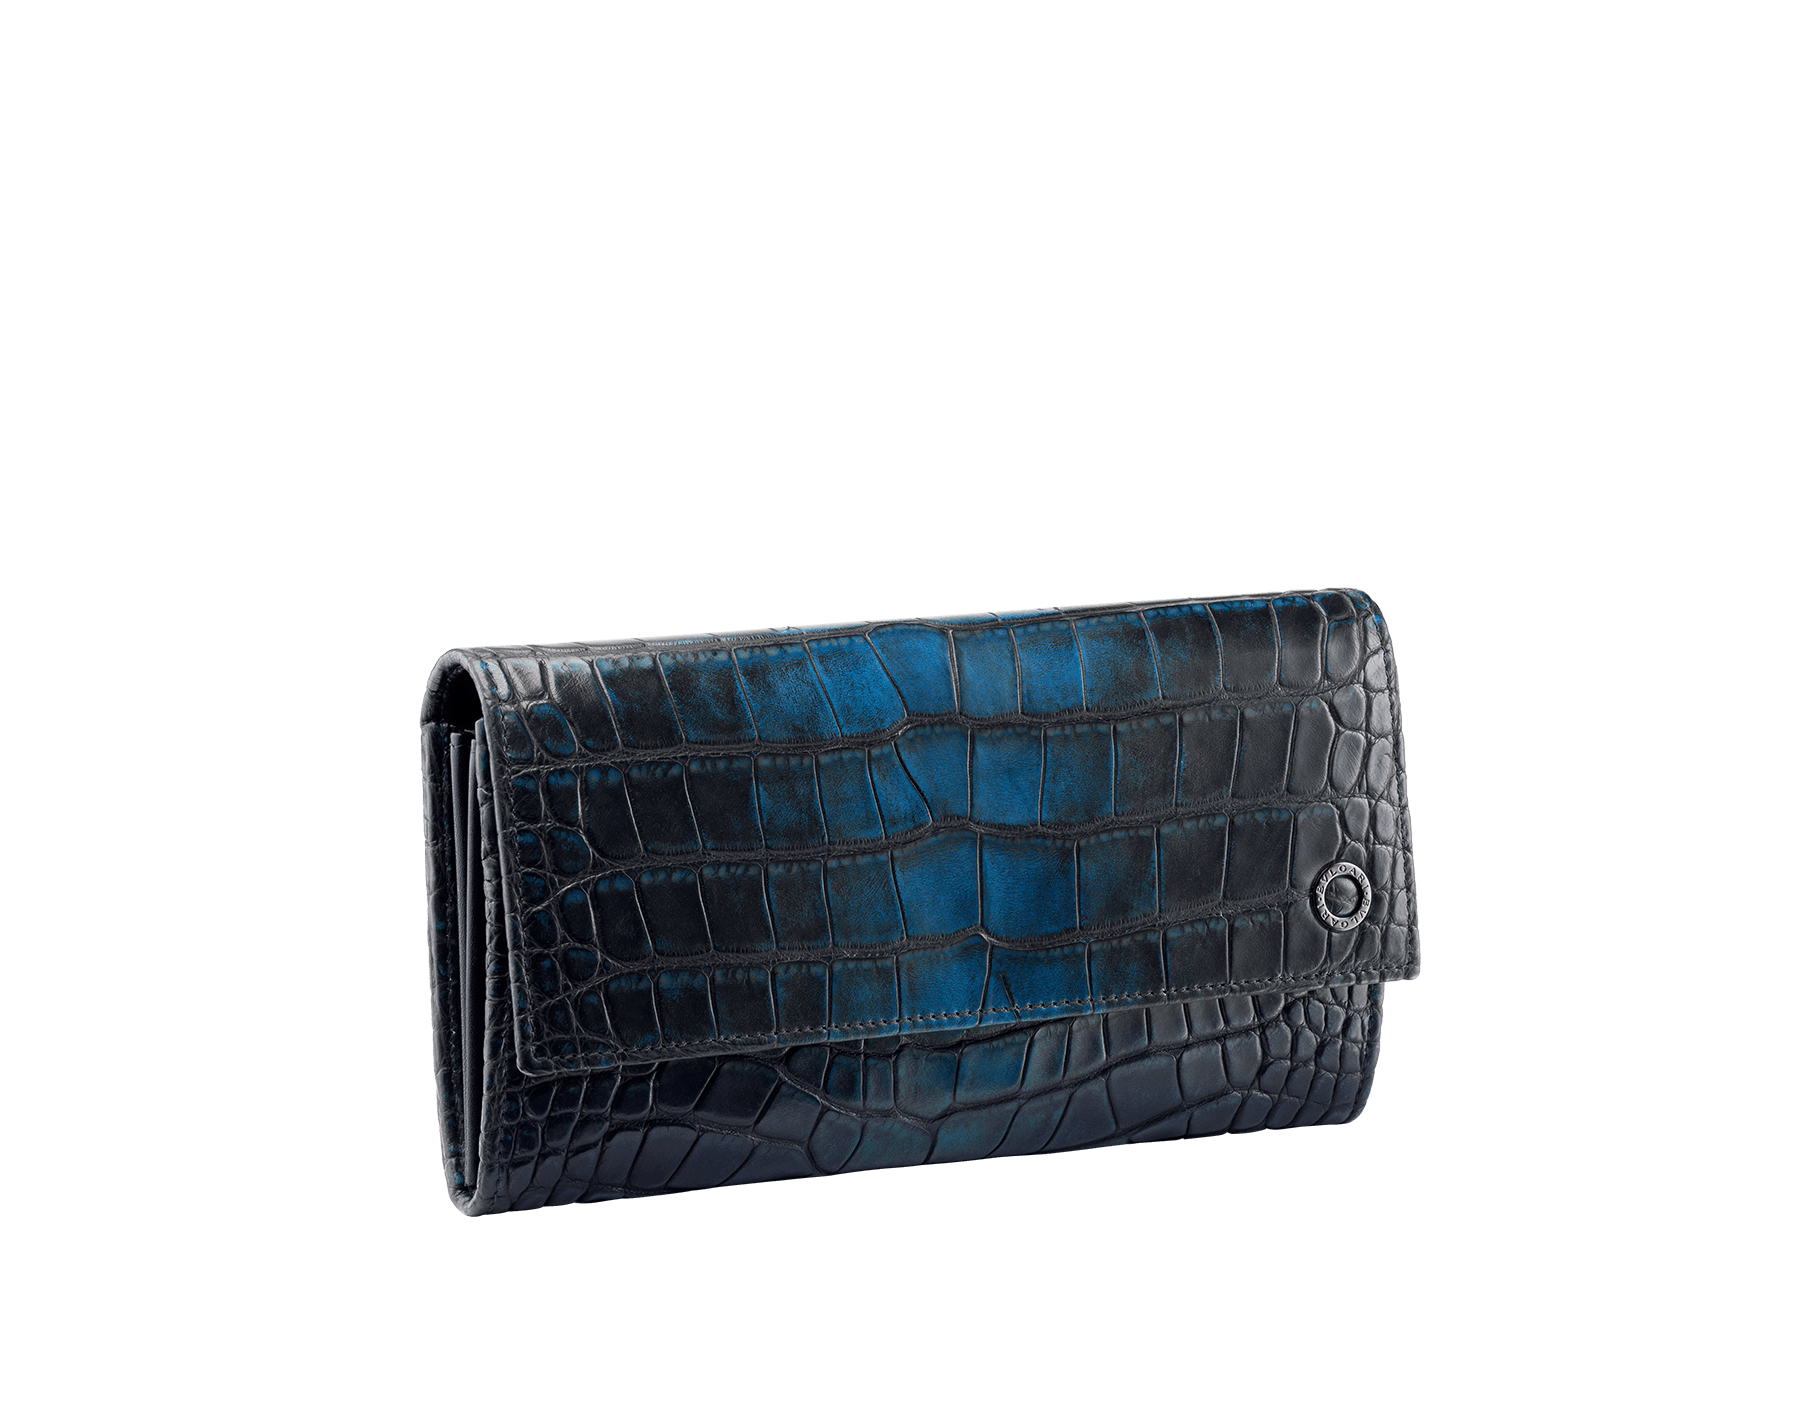 Man wallet pochette in Jungle green alligator skin and black smooth calf leather, with brass dark ruthenium plated hardware featuring the Bulgari-Bulgari motif. BBM-WLT-POC-10C-HE image 1